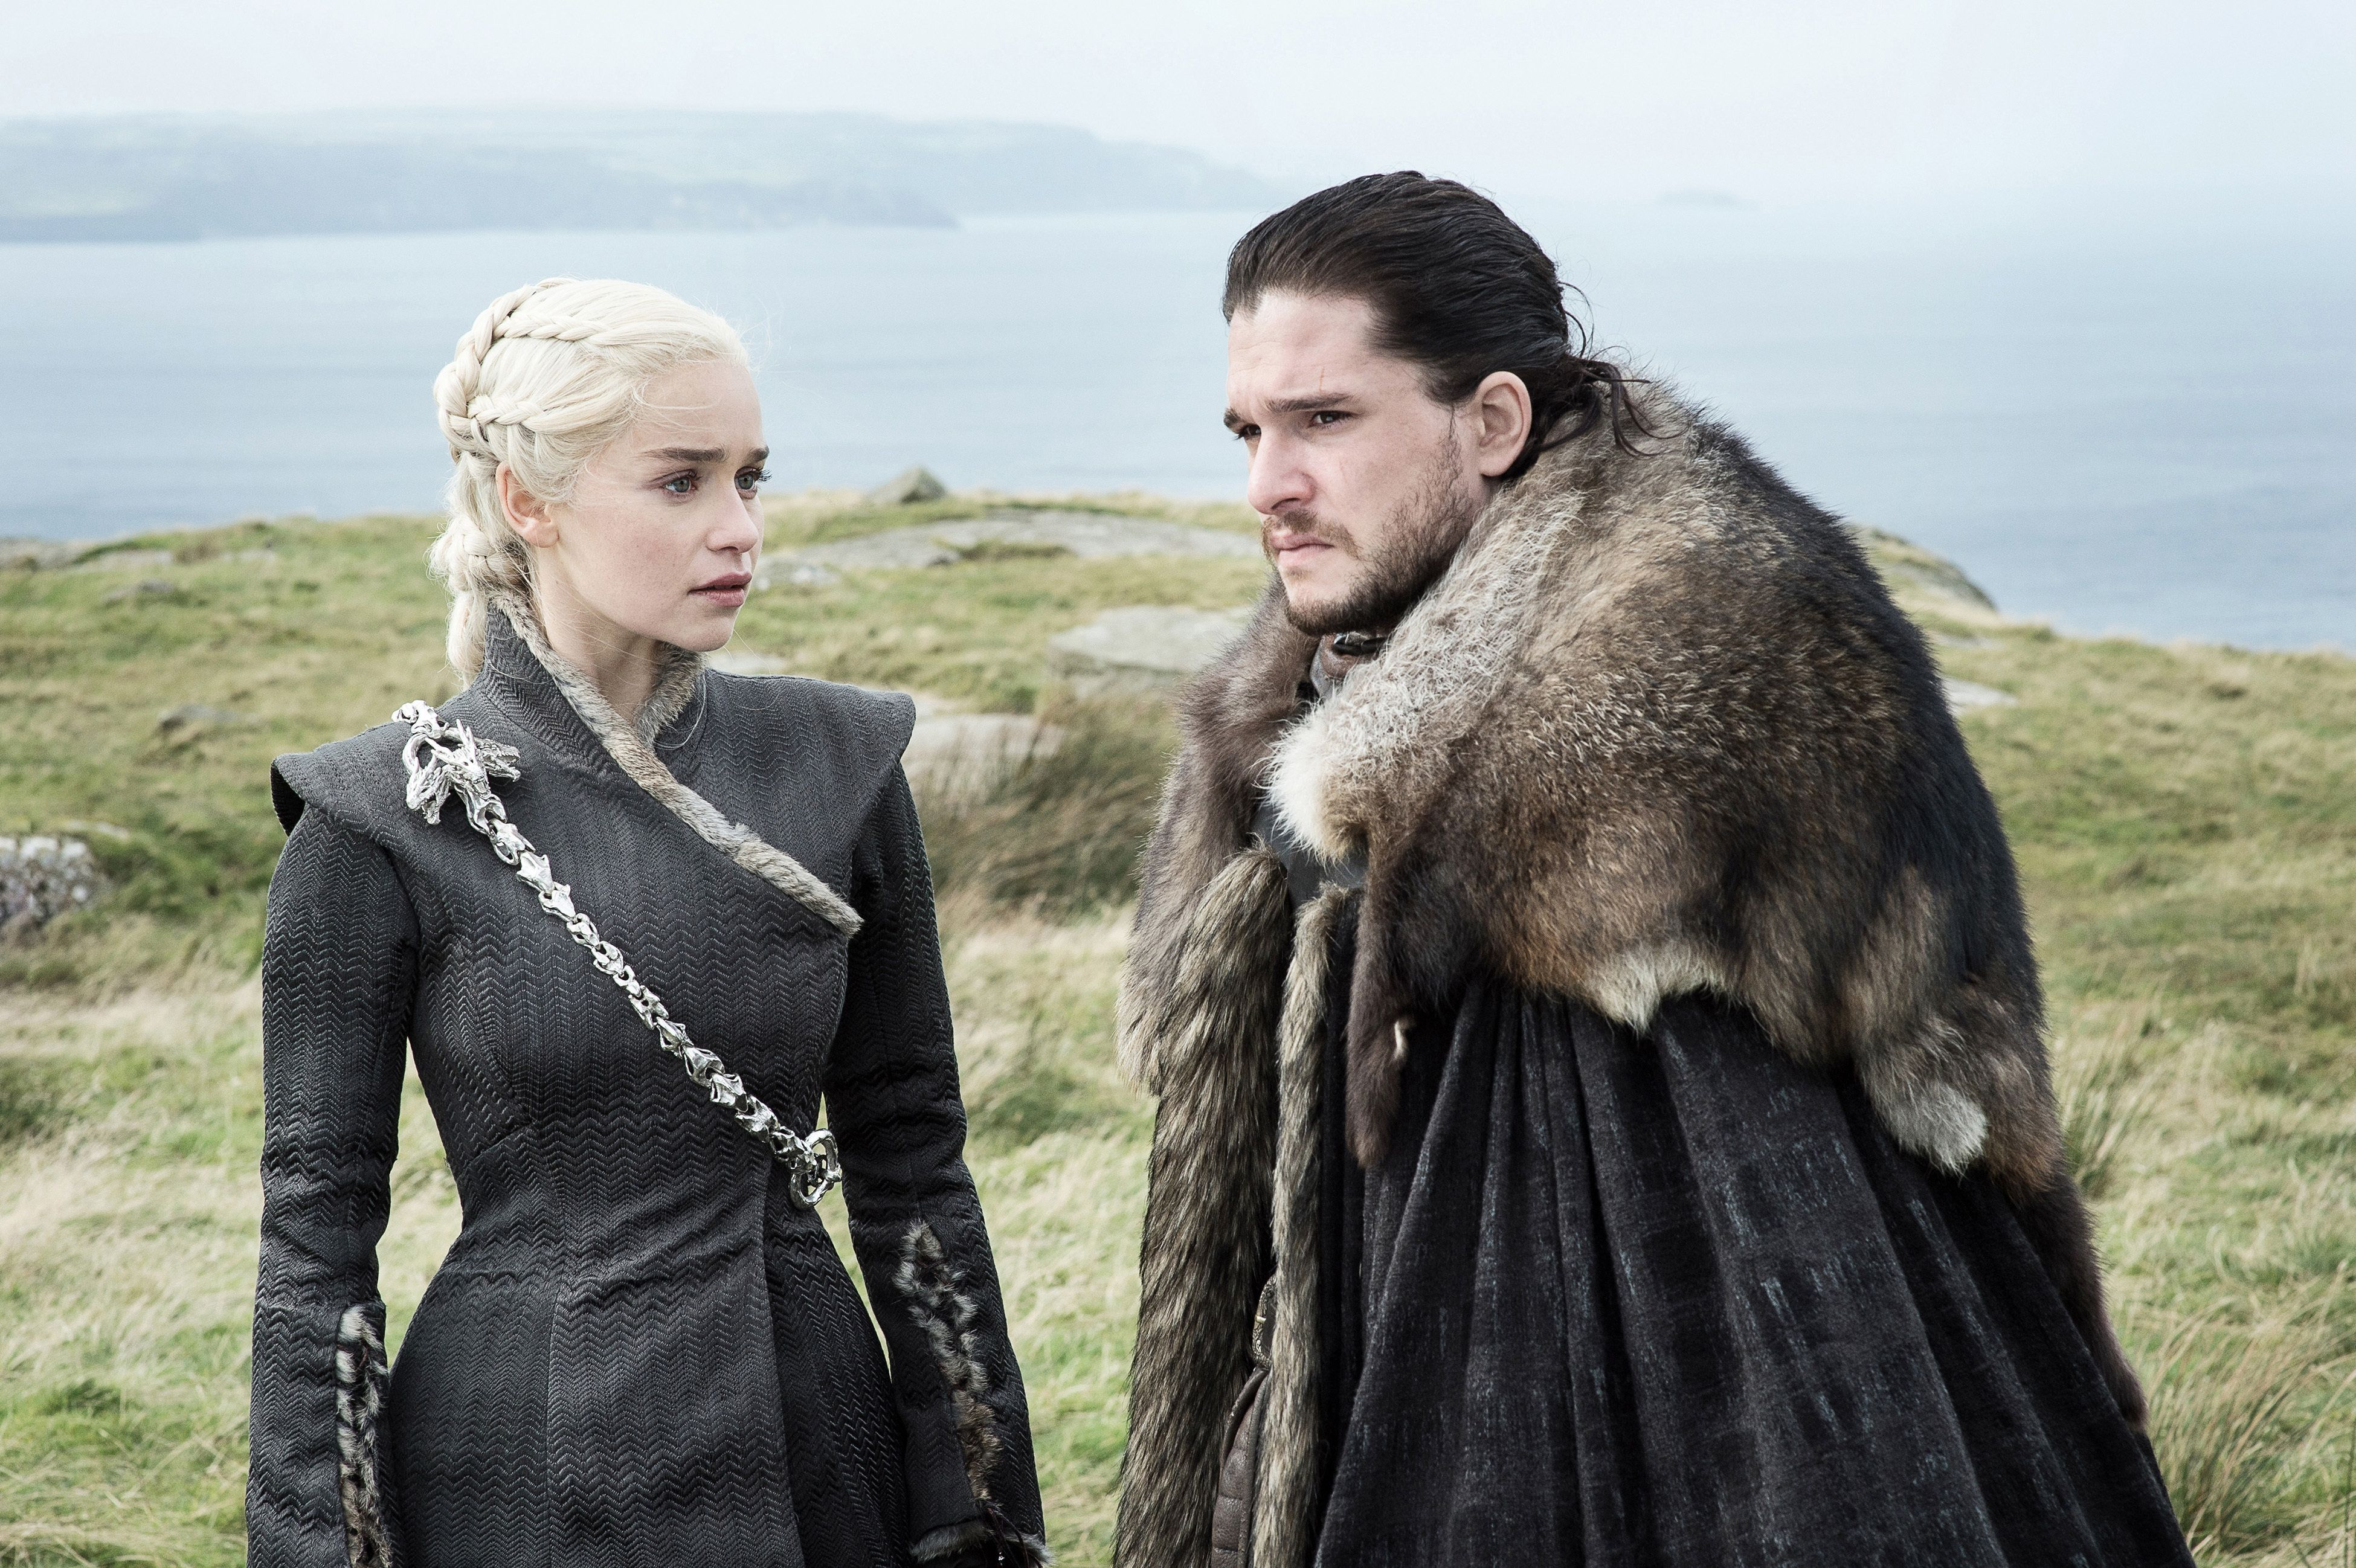 According to a new study, Jon Snow has a better chance of surviving at the end of